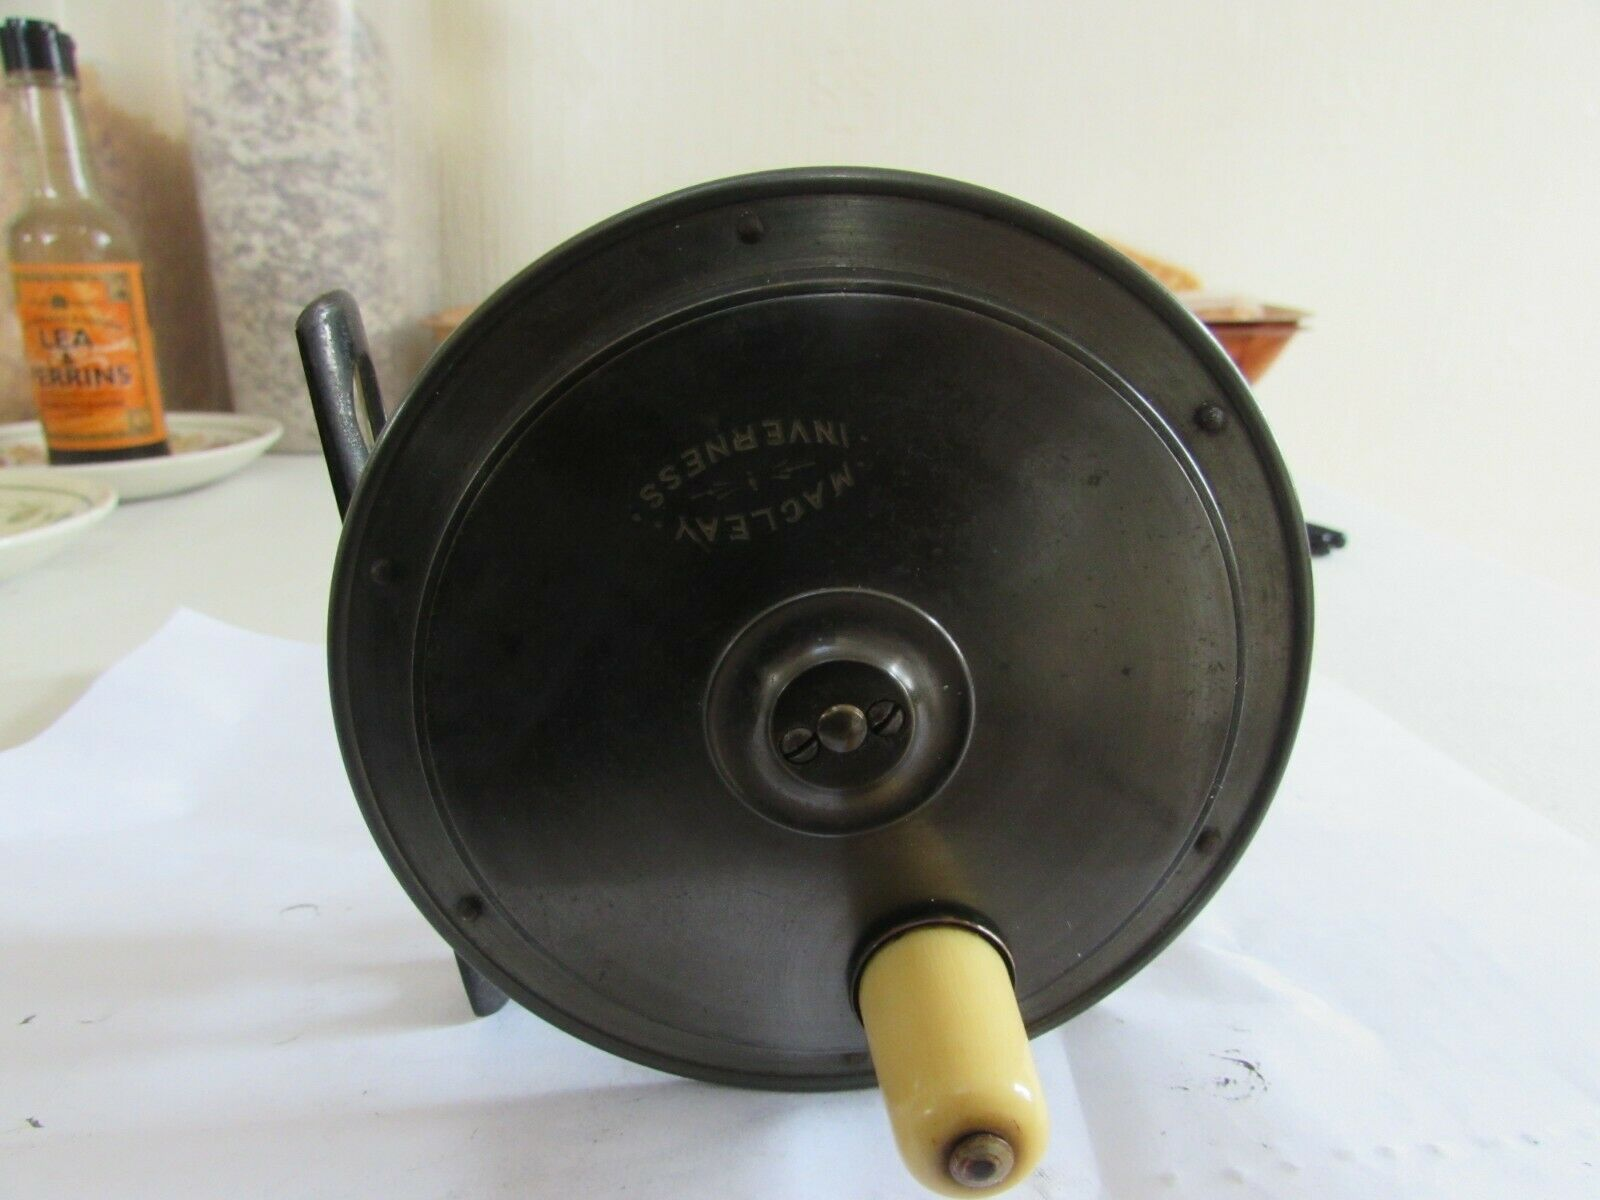 A1 stunning vintage malloch macleay inverness brass hercules  salmon reel 4.5   up to 42% off